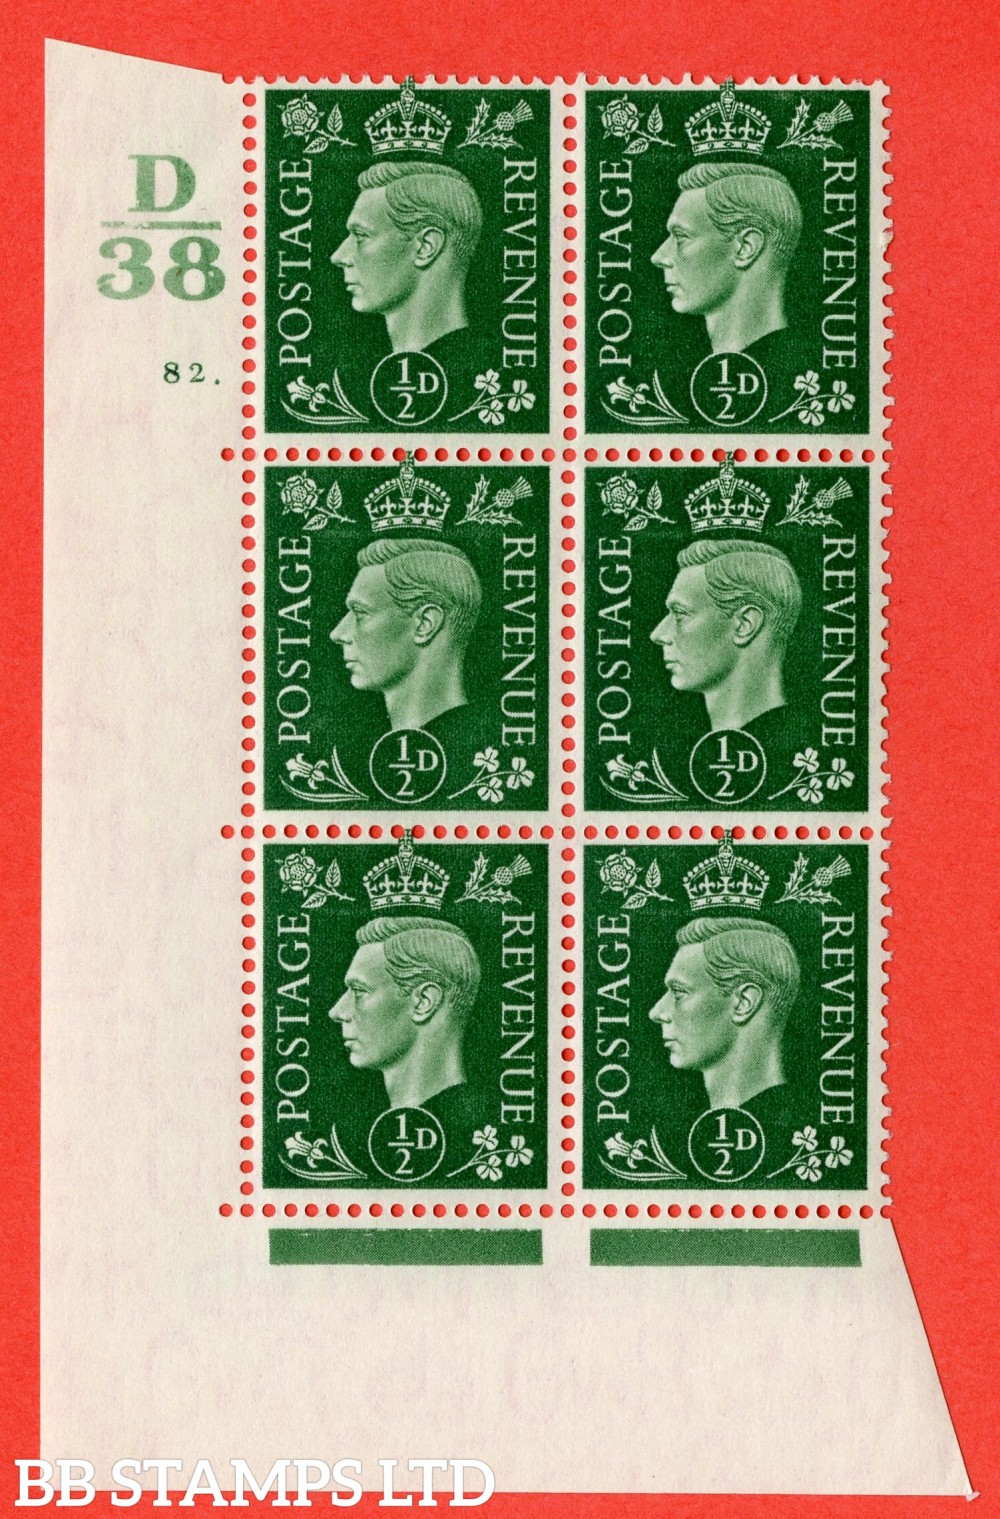 "SG. 462. Q1. ½d Green. A fine lightly mounted mint "" Control D38 cylinder 82 dot "" block of 6 with perf type 5 E/I with marginal rule."